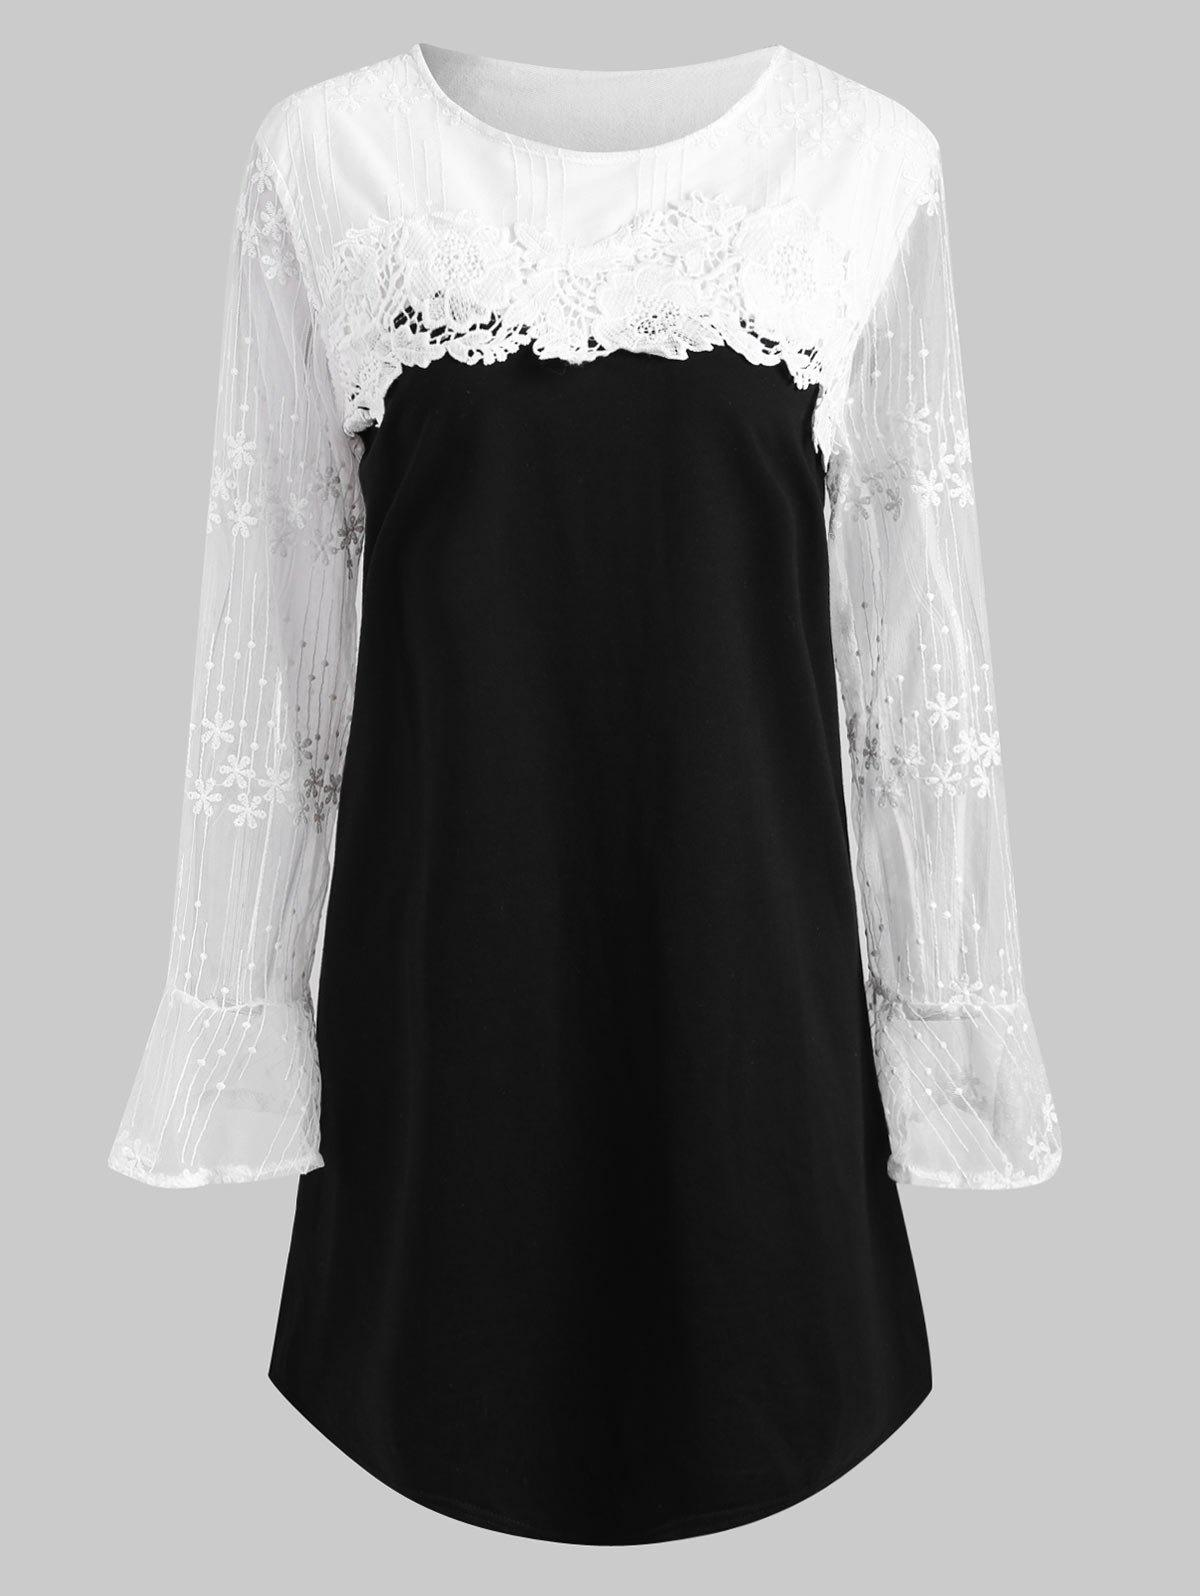 Plus Size Applique Embellished Mesh Panel Cute Tunic DressWOMEN<br><br>Size: 5XL; Color: BLACK; Style: Preppy Style; Material: Cotton Blend,Polyester; Silhouette: A-Line; Dresses Length: Mini; Neckline: Round Collar; Sleeve Length: Long Sleeves; Embellishment: Appliques,Lace; Pattern Type: Patchwork; With Belt: No; Season: Fall,Winter; Weight: 0.3700kg; Package Contents: 1 x Dress;